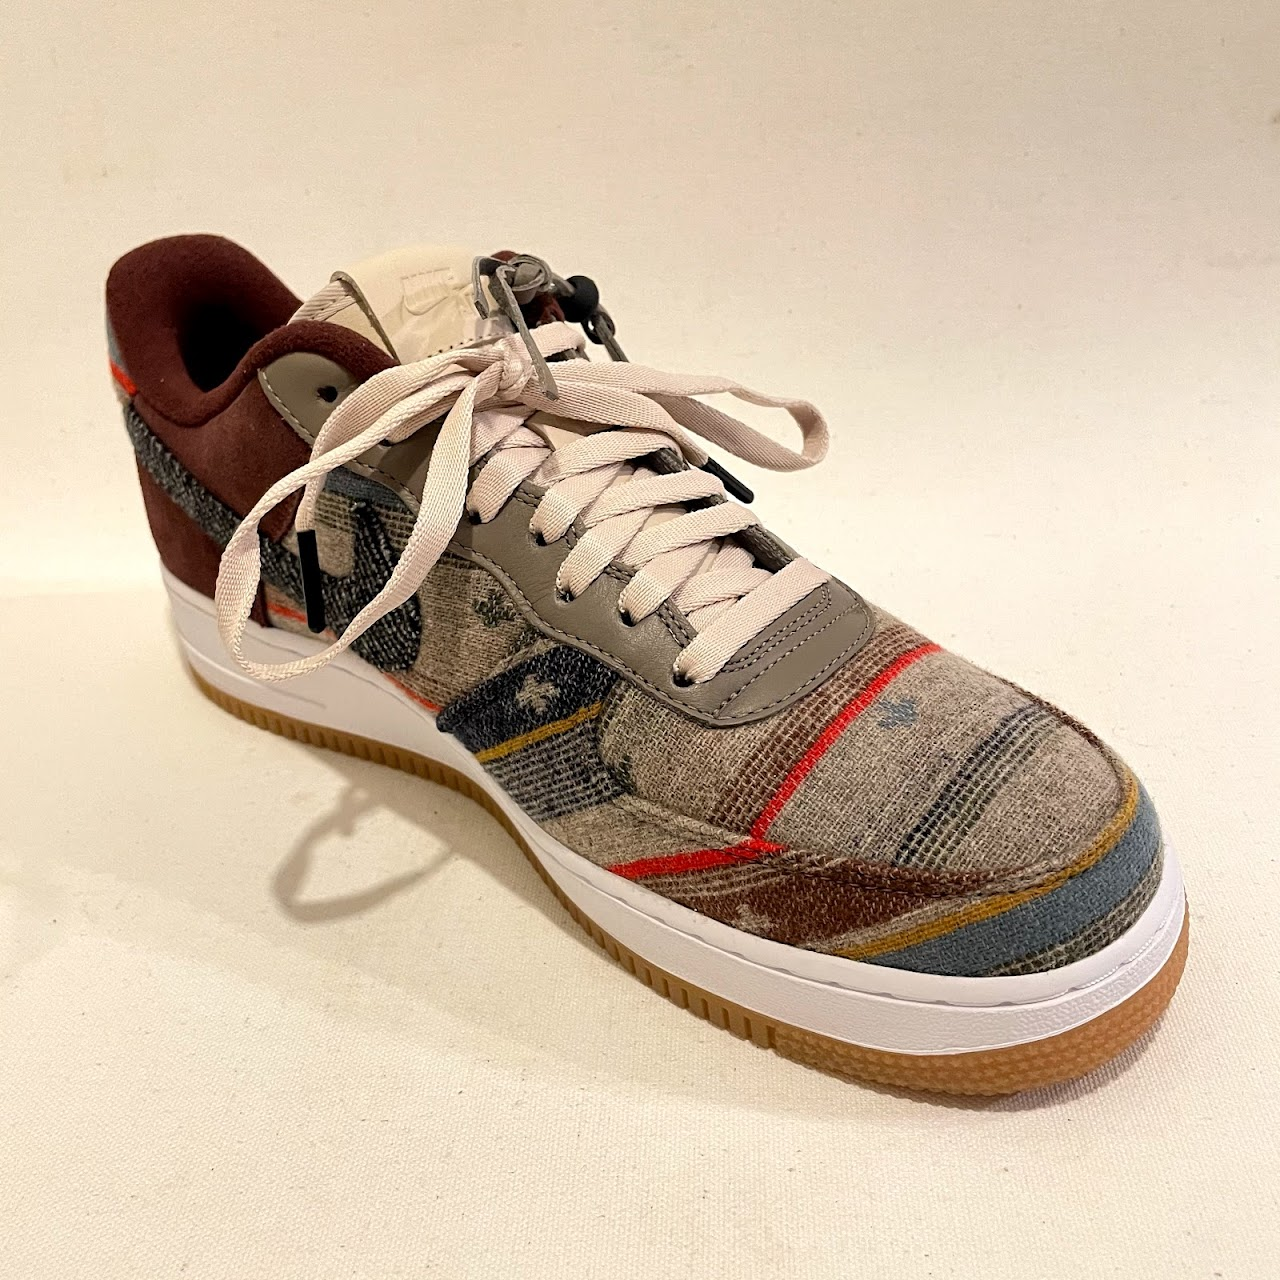 Nike NEW 'By You' Air X Pendleton Sneakers